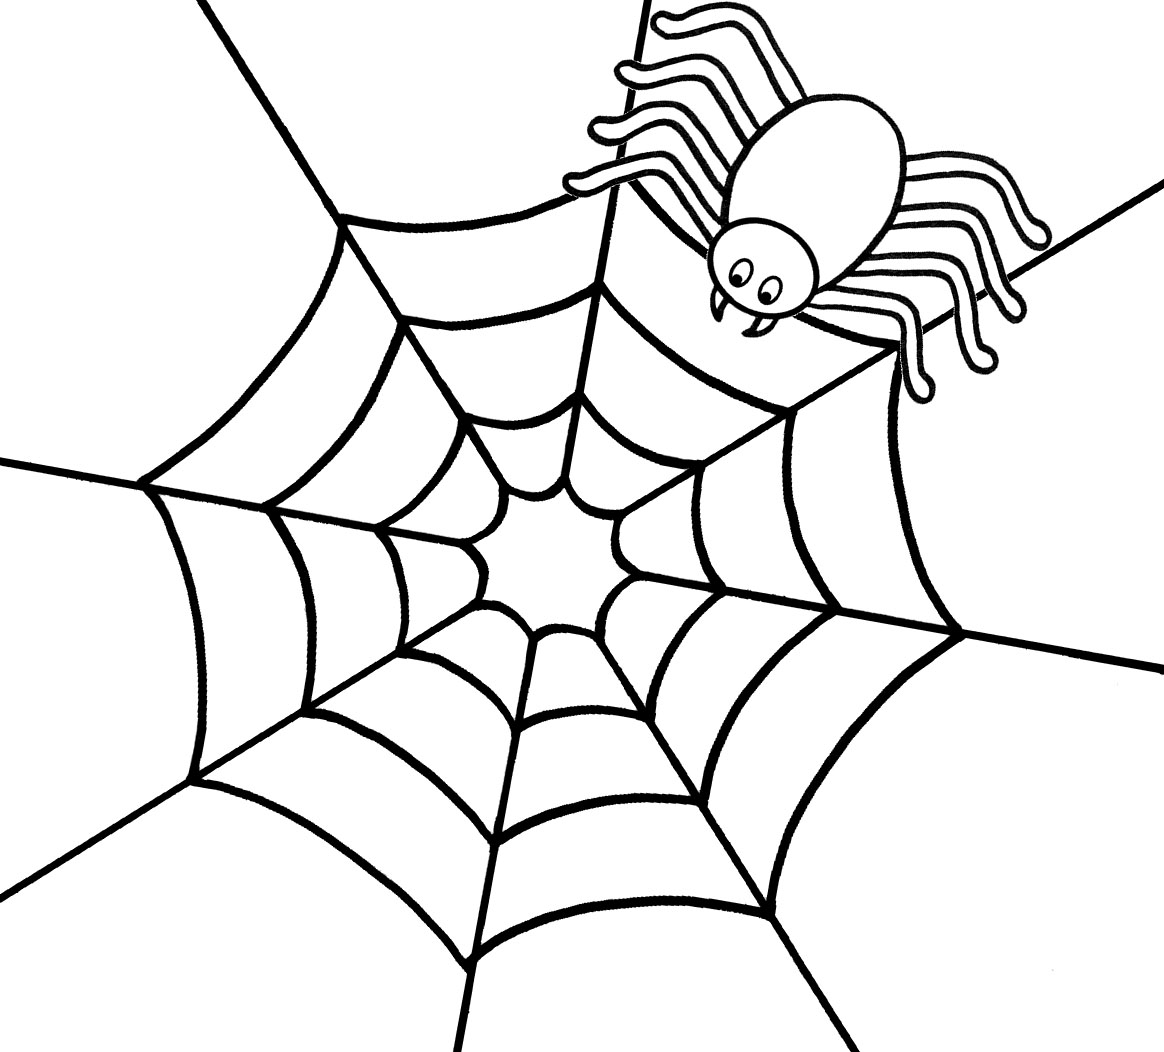 Spider Printable Coloring Pages Coloring Pages Spider